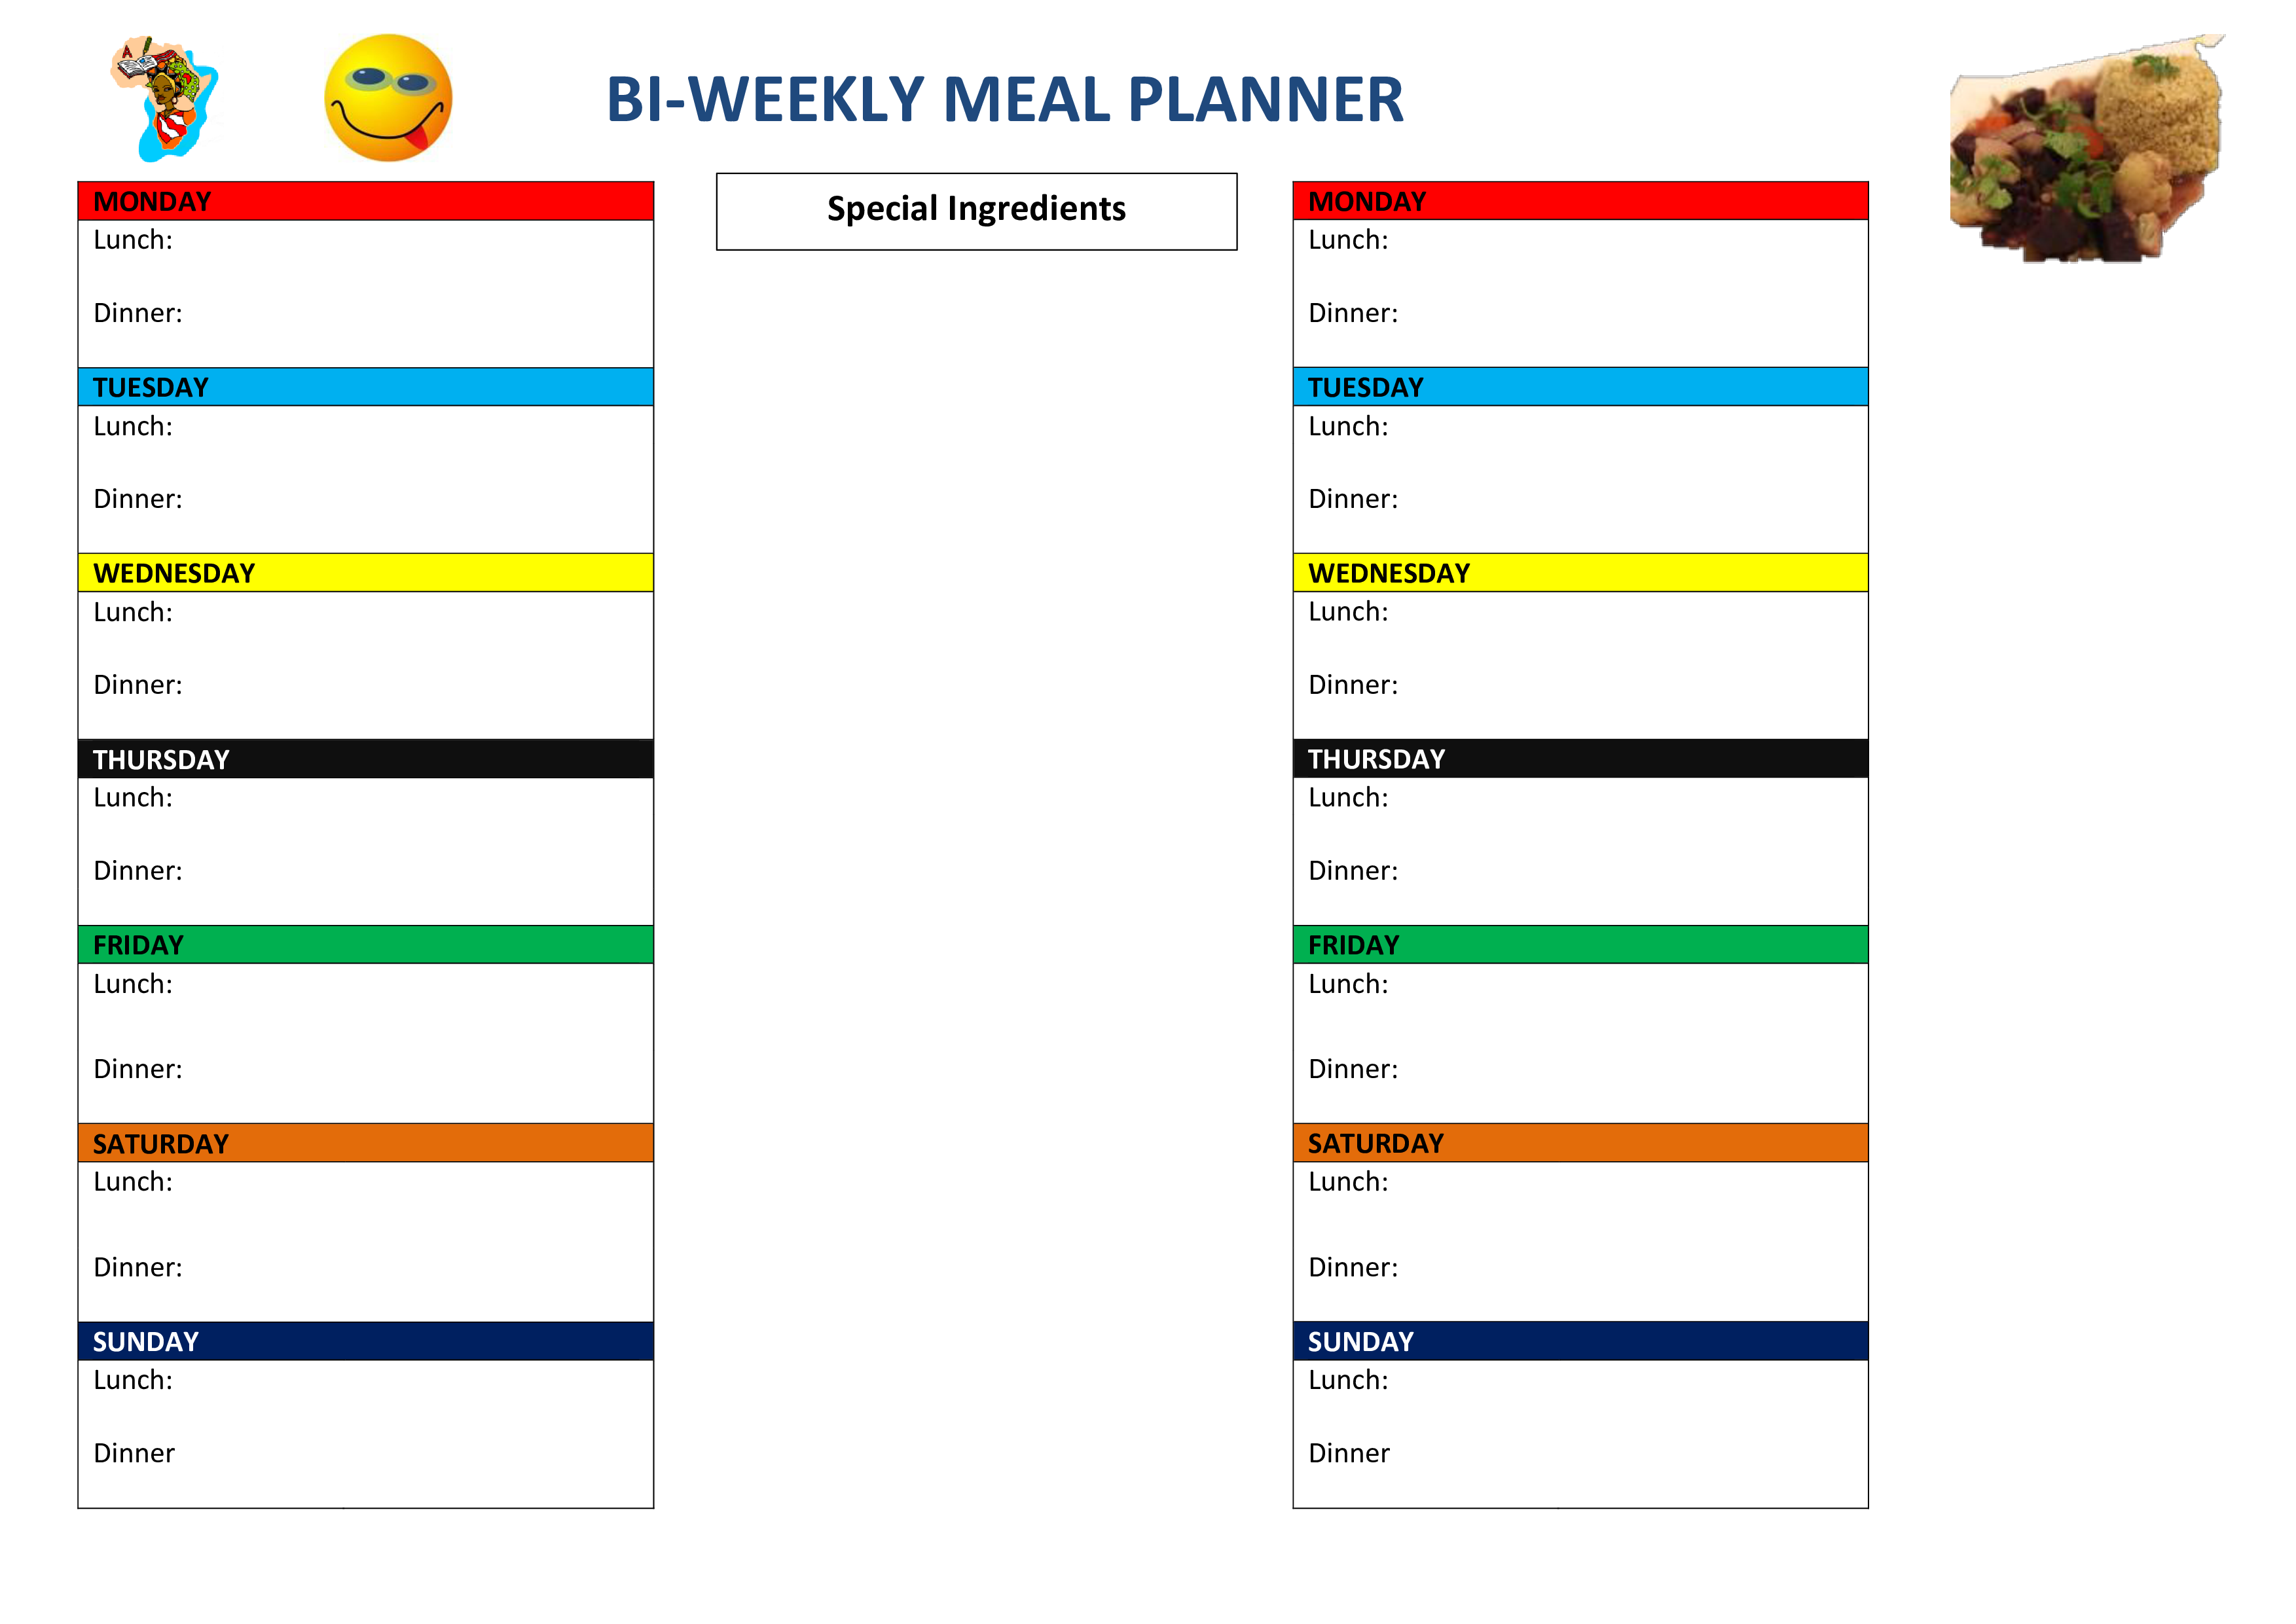 Meal templates images gallery. Planner clipart supper